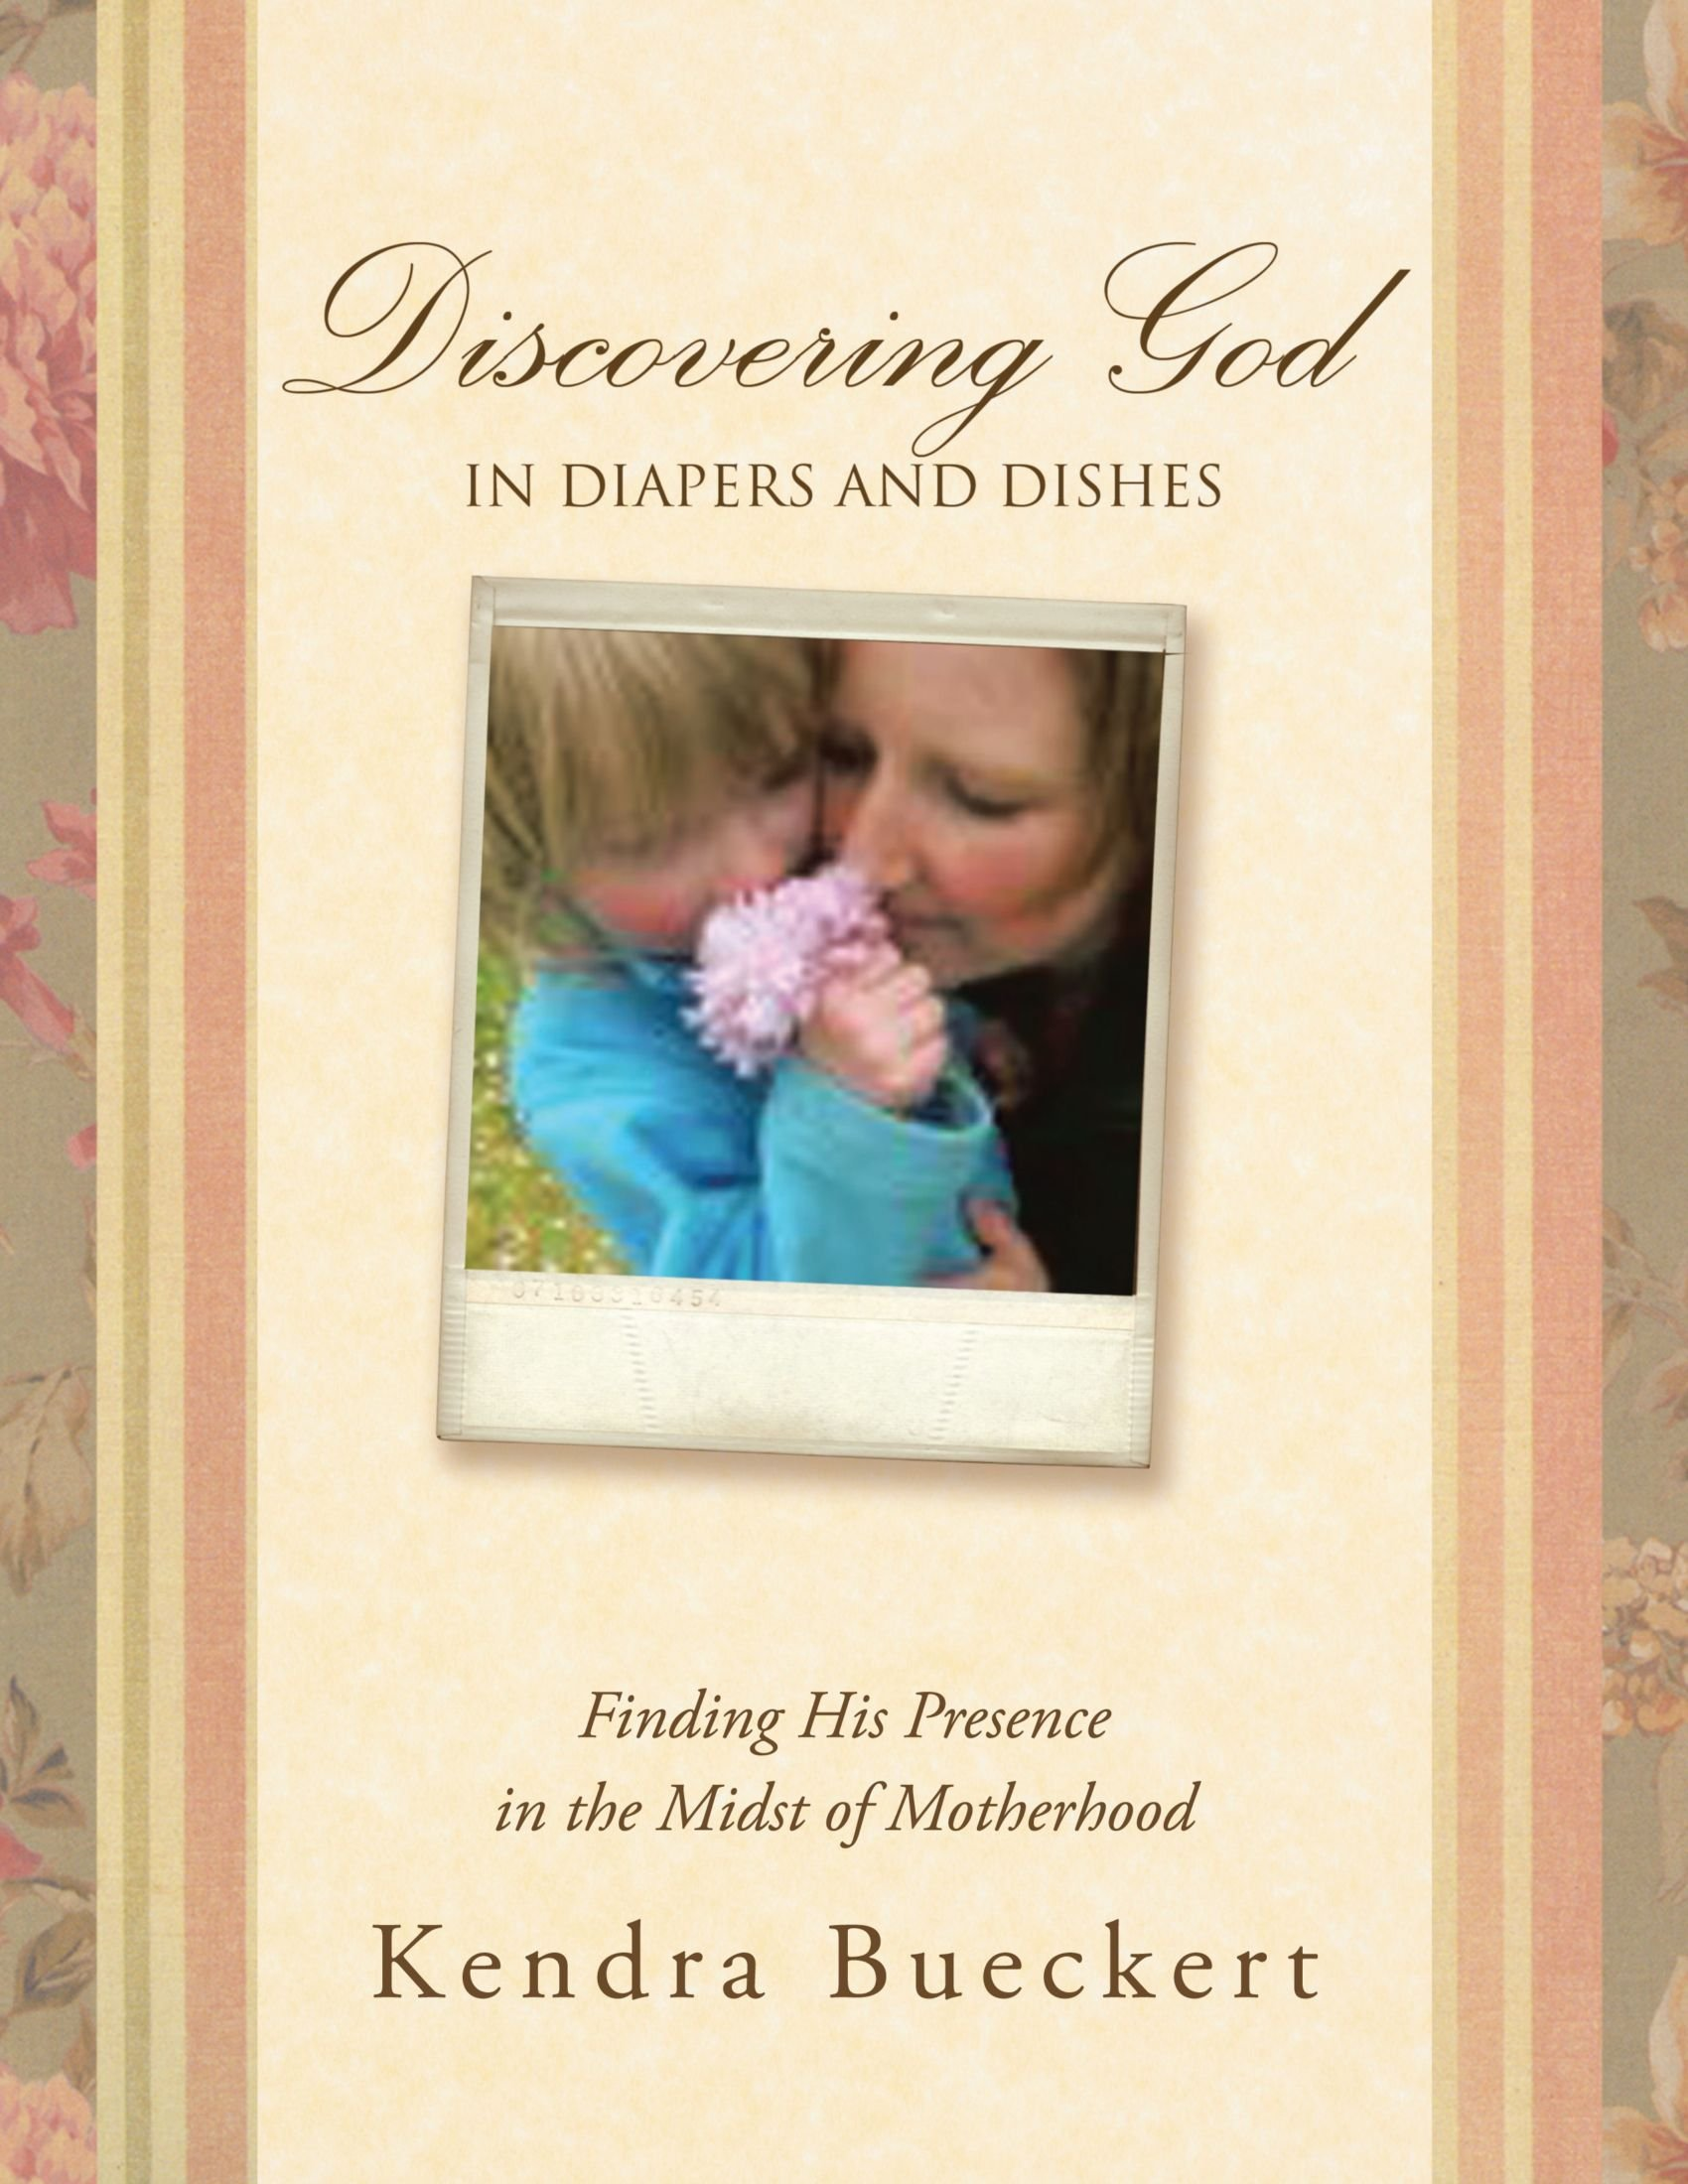 Discovering God in Diapers and Dishes: Finding His Presence in the Midst of Motherhood